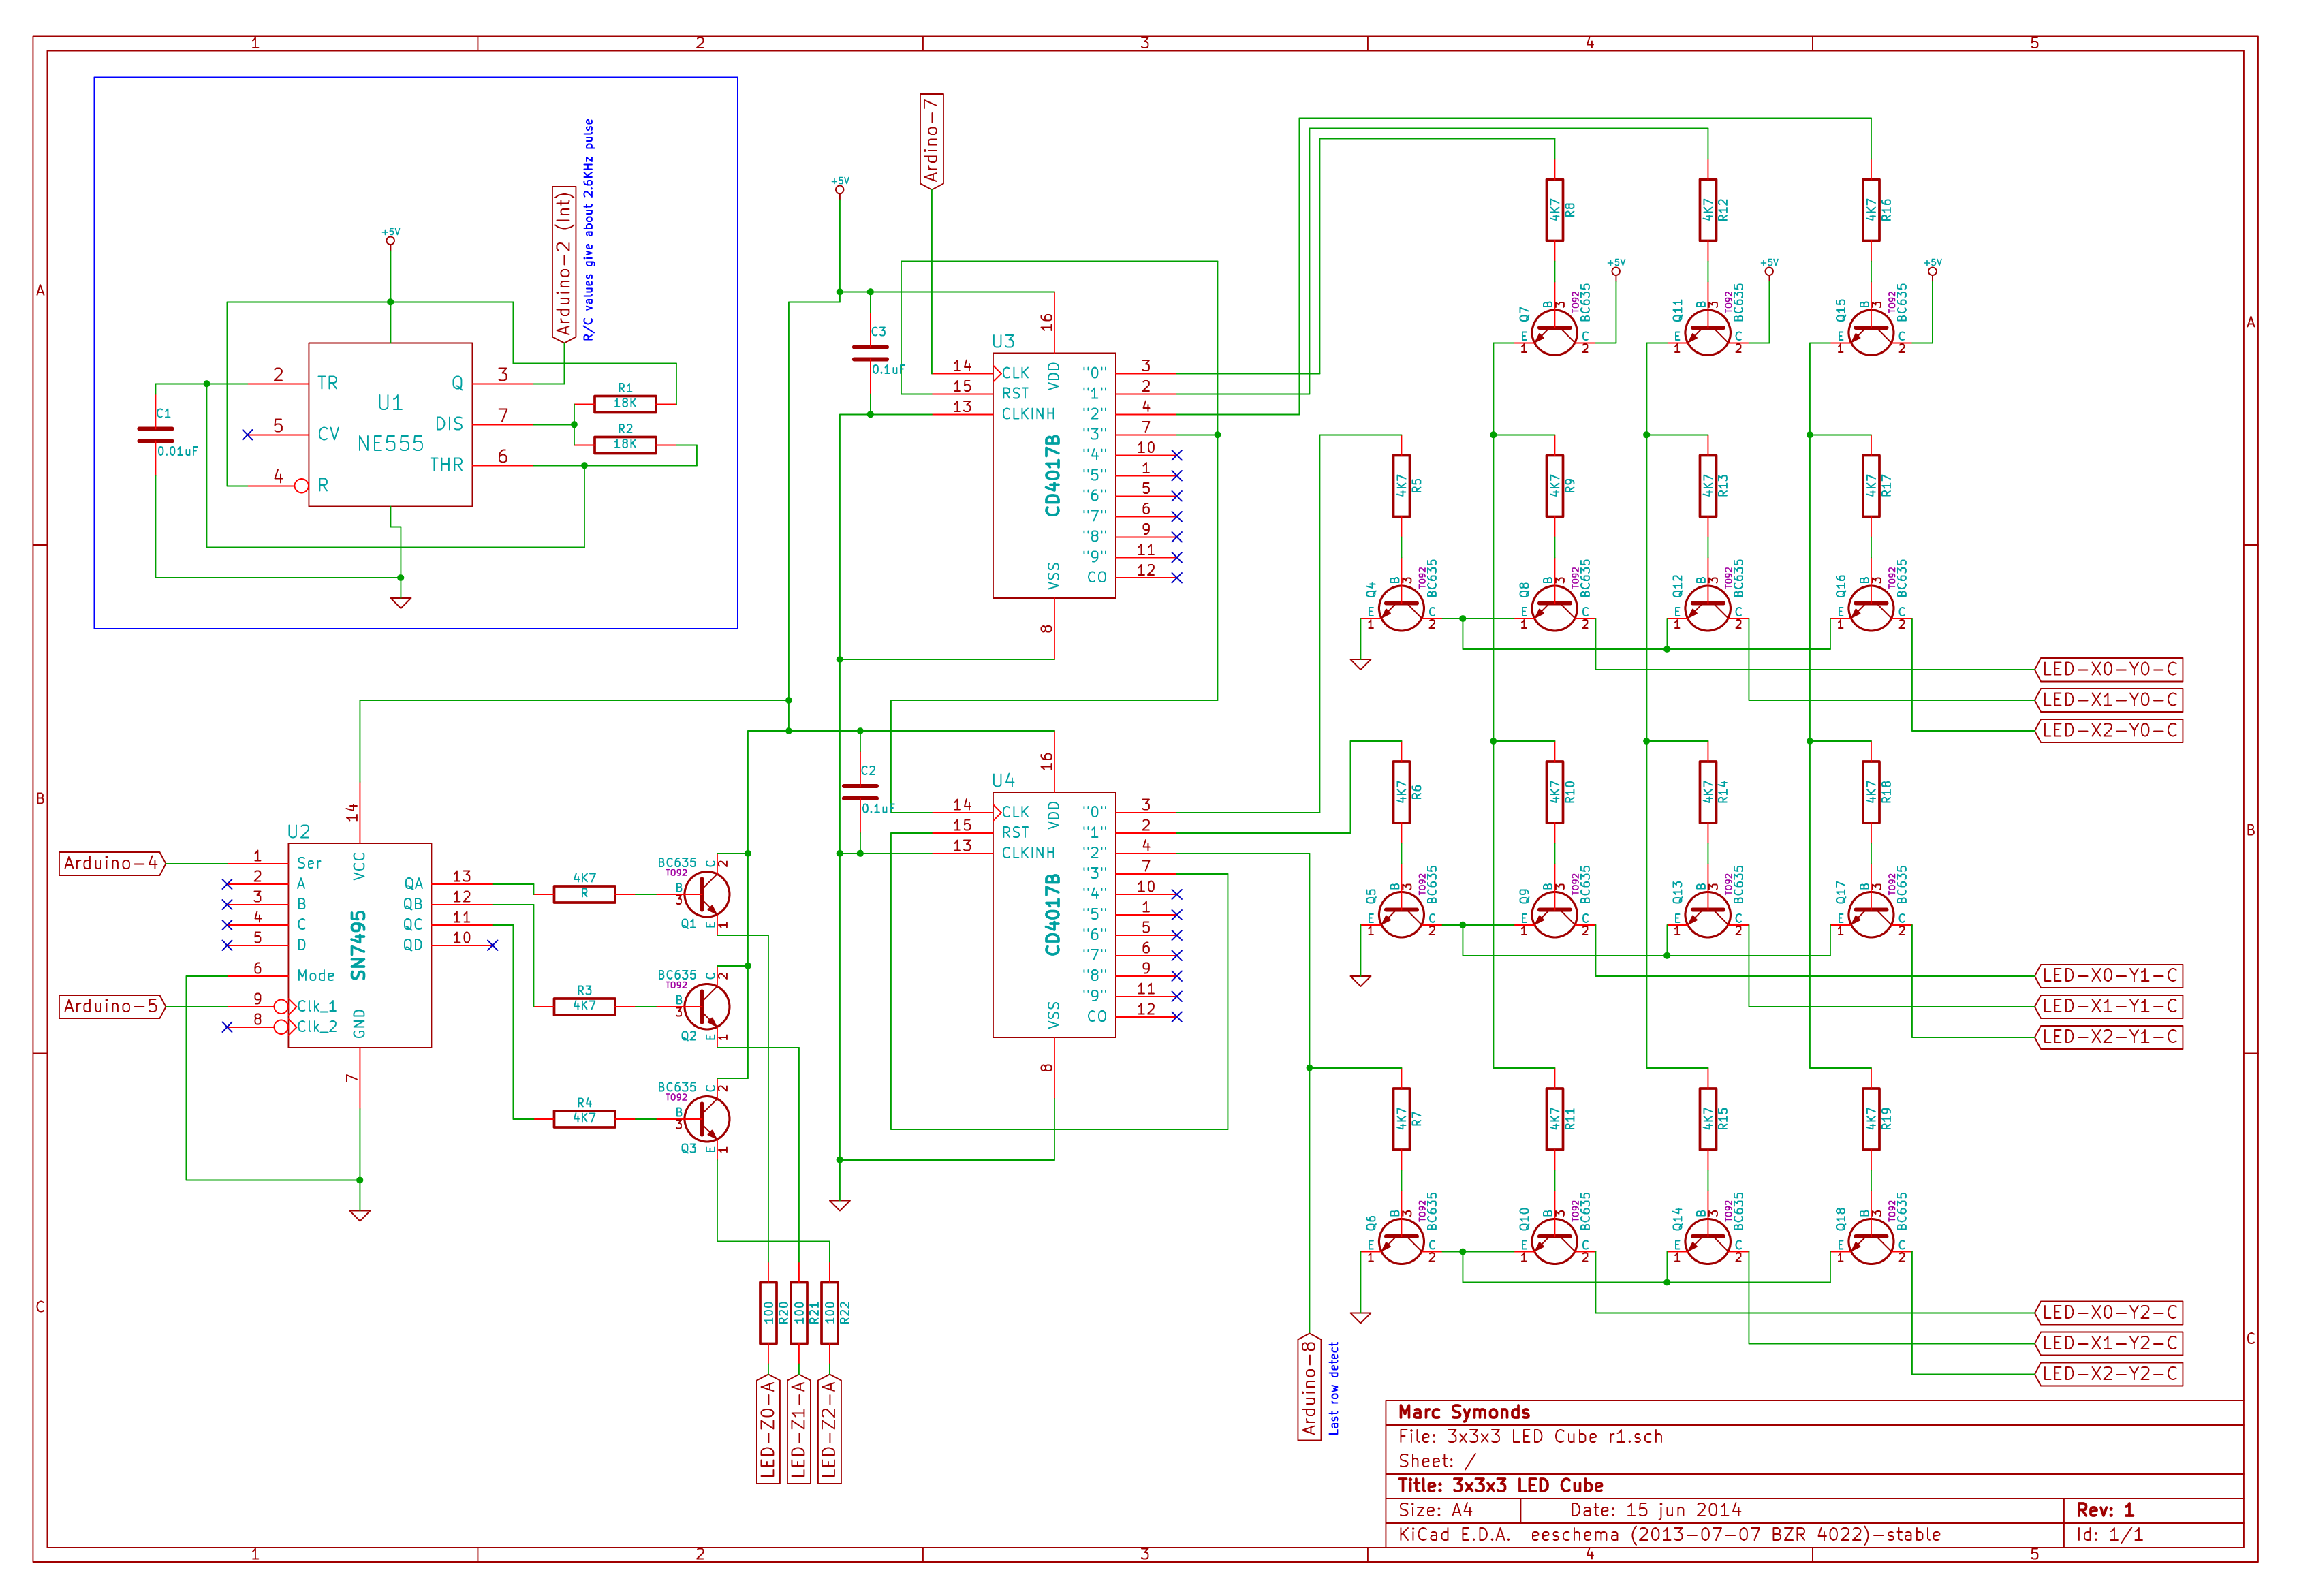 Hardware Marcs Blog Two Way 12 Led Running Lights Using Cd4017 And Ne555 3x3x3 Mono Cube R1 Schematic This Version Uses 4017